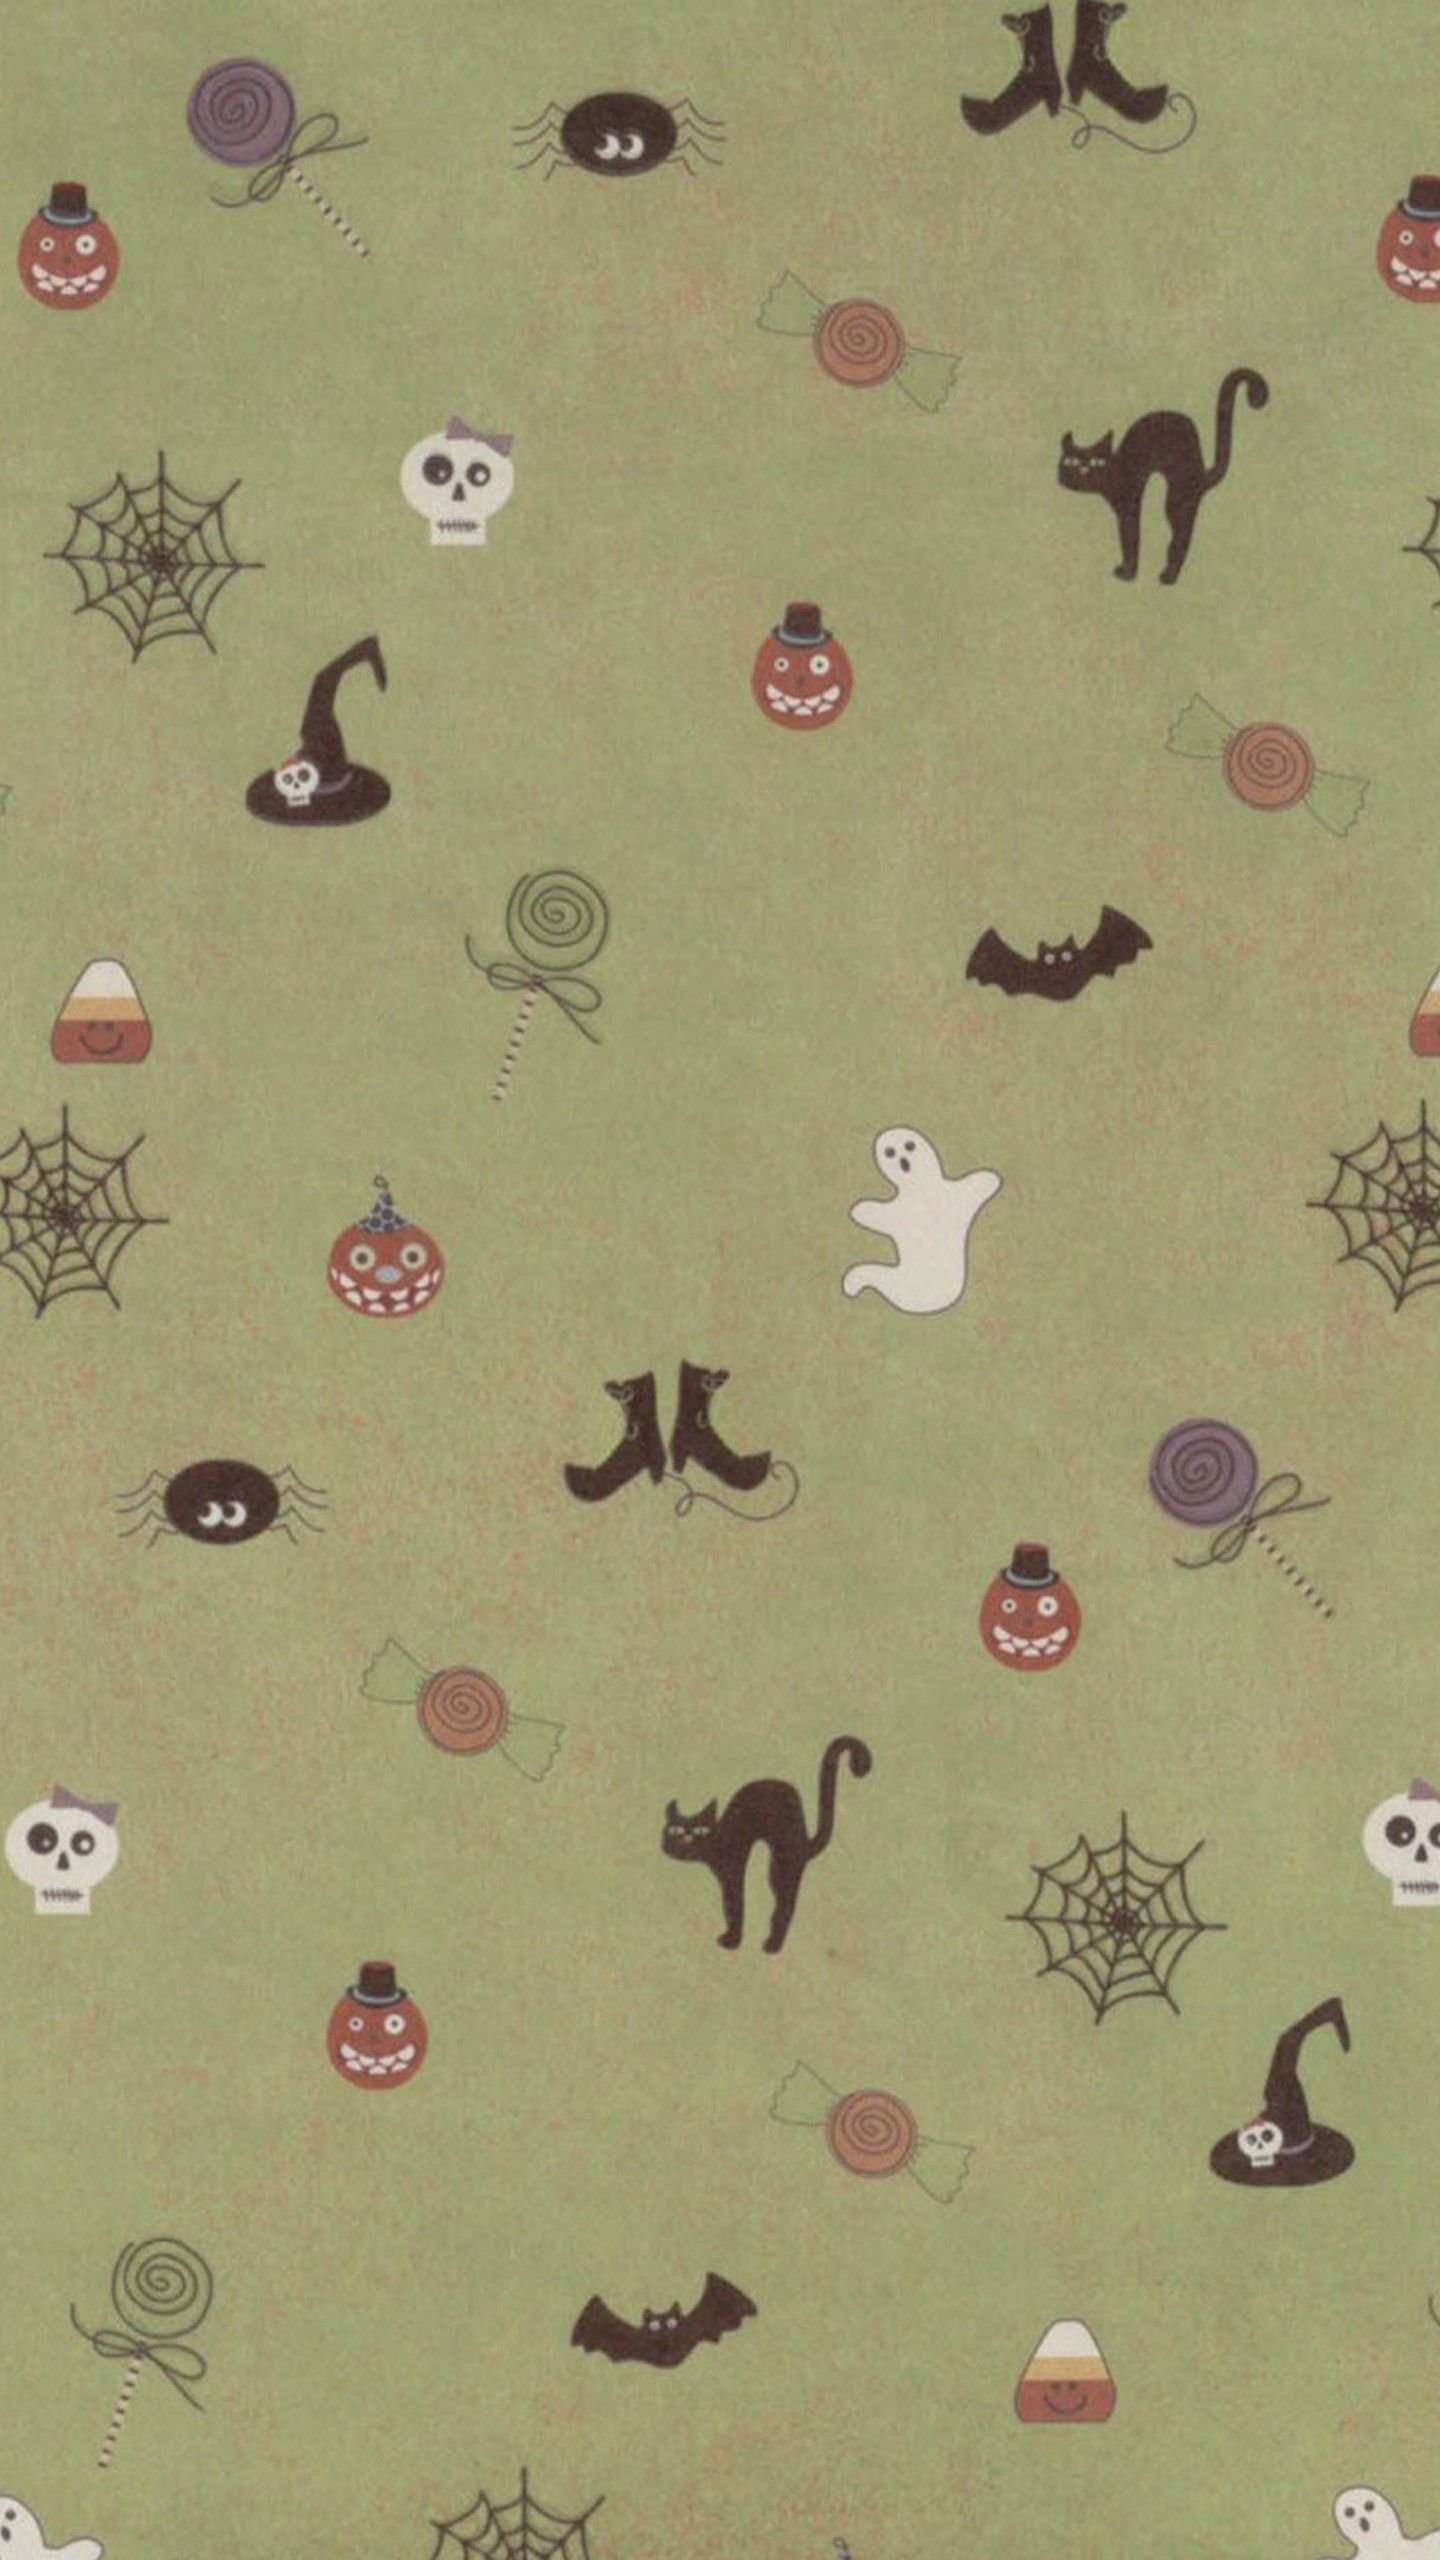 Halloween Wallpaper Iphone Cute.Cute Halloween Wallpapers Top Free Cute Halloween Backgrounds